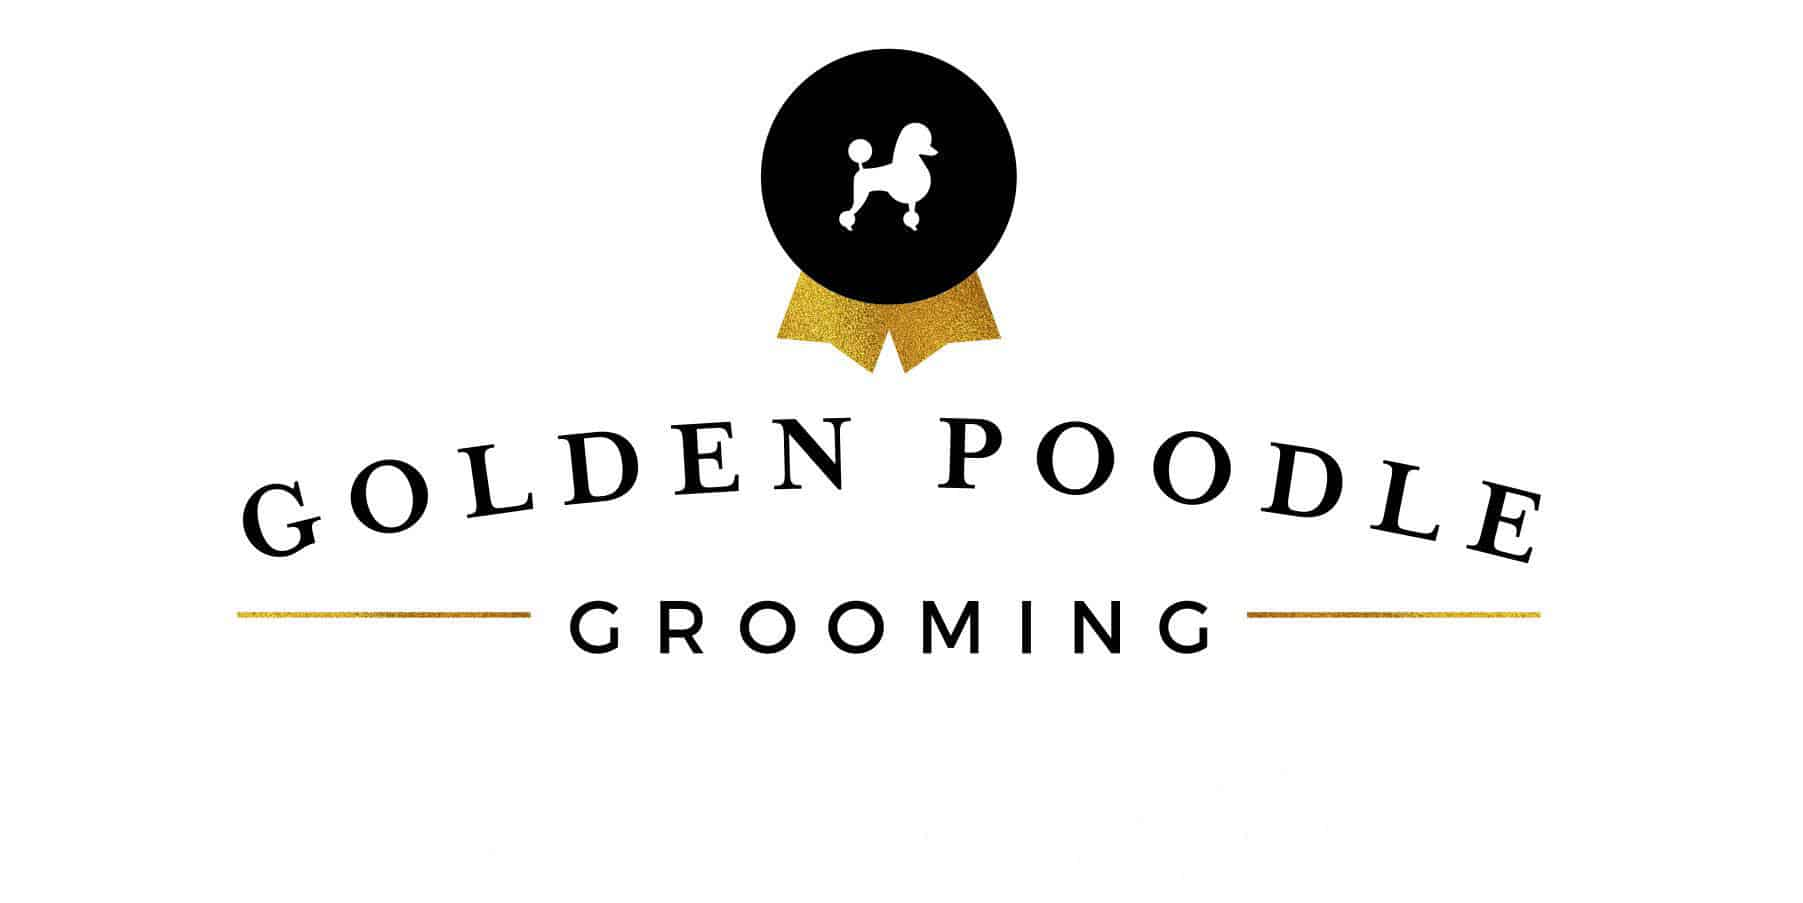 Golden Poodle Grooming